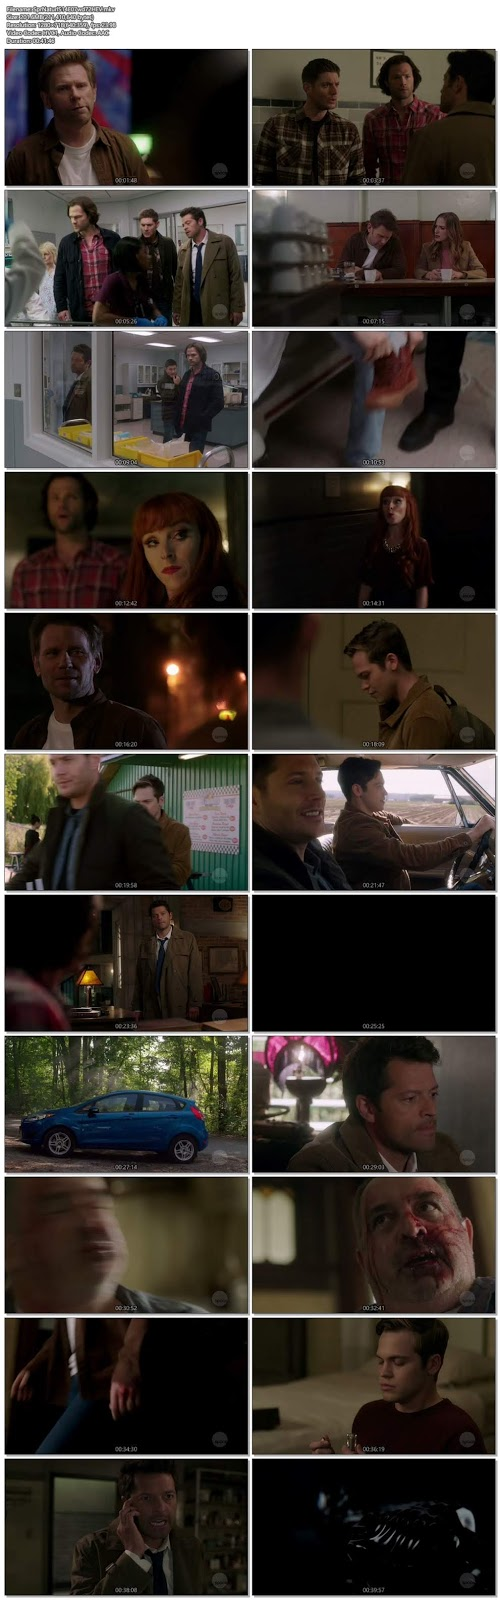 Supernatural S14 Episode 07 720p HDTV 200MB ESub x265 HEVC, hollwood tv series Supernatural S14 Episode 07 720p hdtv tv show hevc x265 hdrip 200mb 250mb free download or watch online at world4ufree.fun